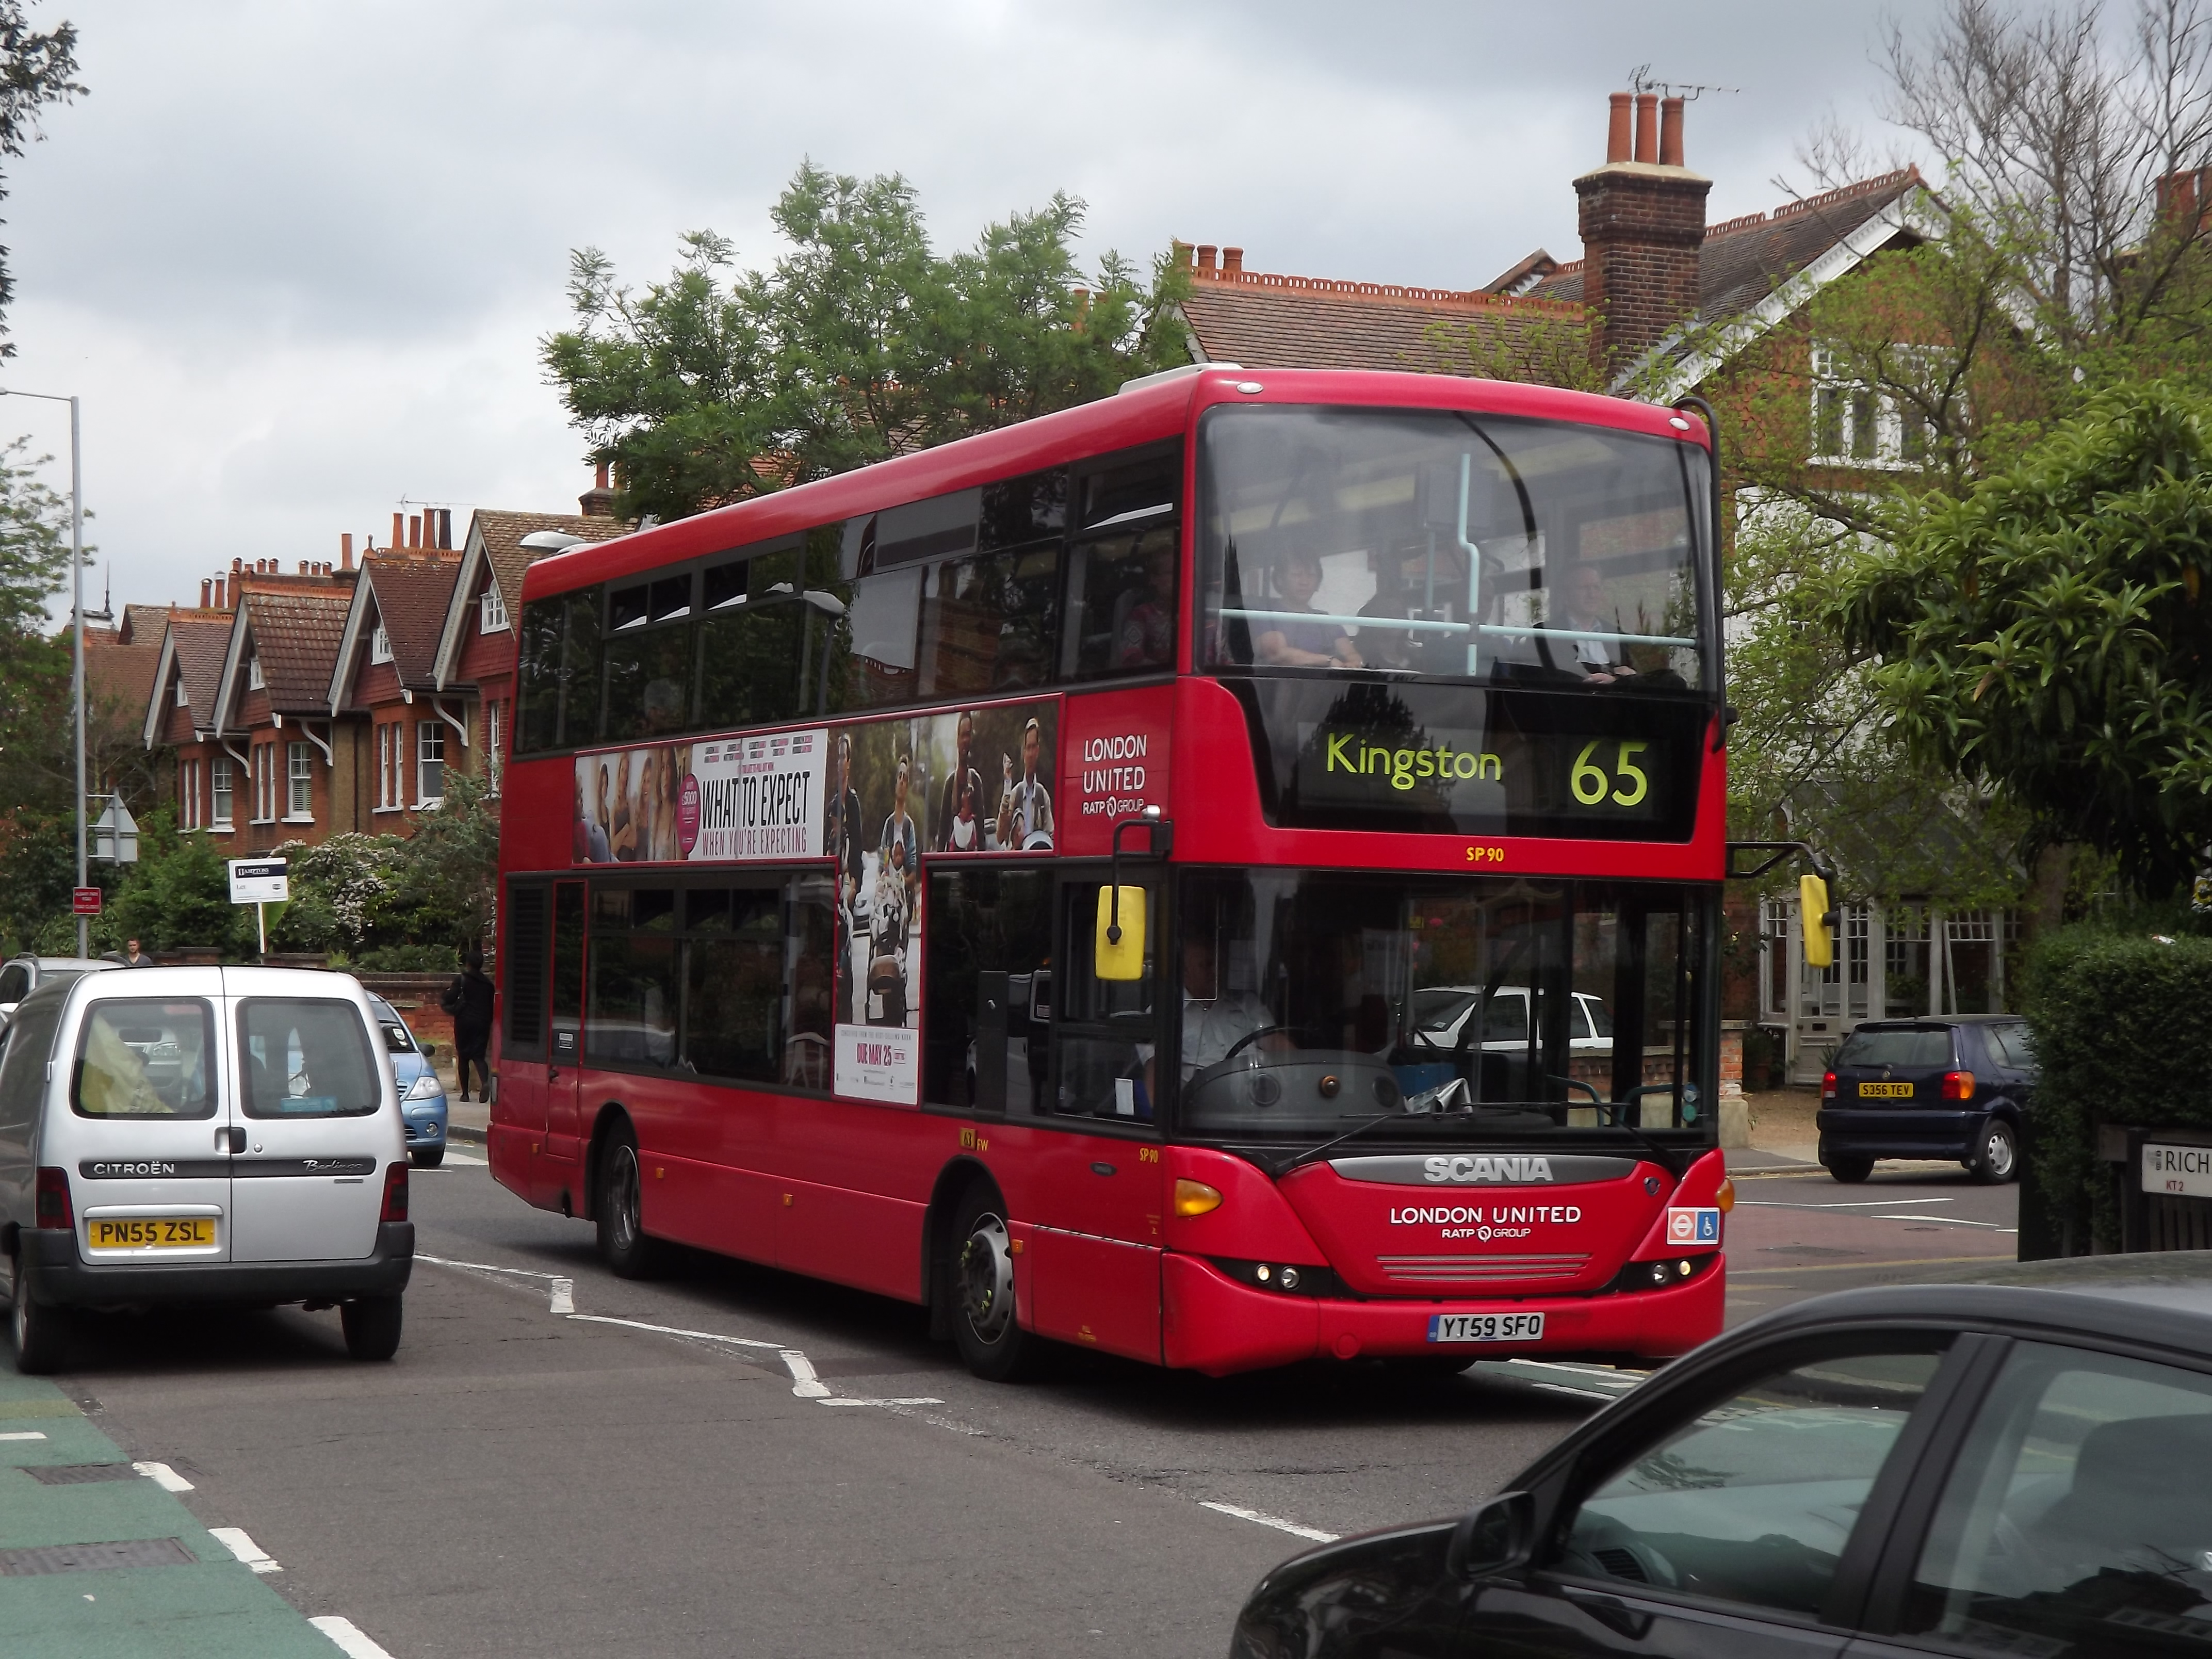 London Buses route 65 - Wikipedia